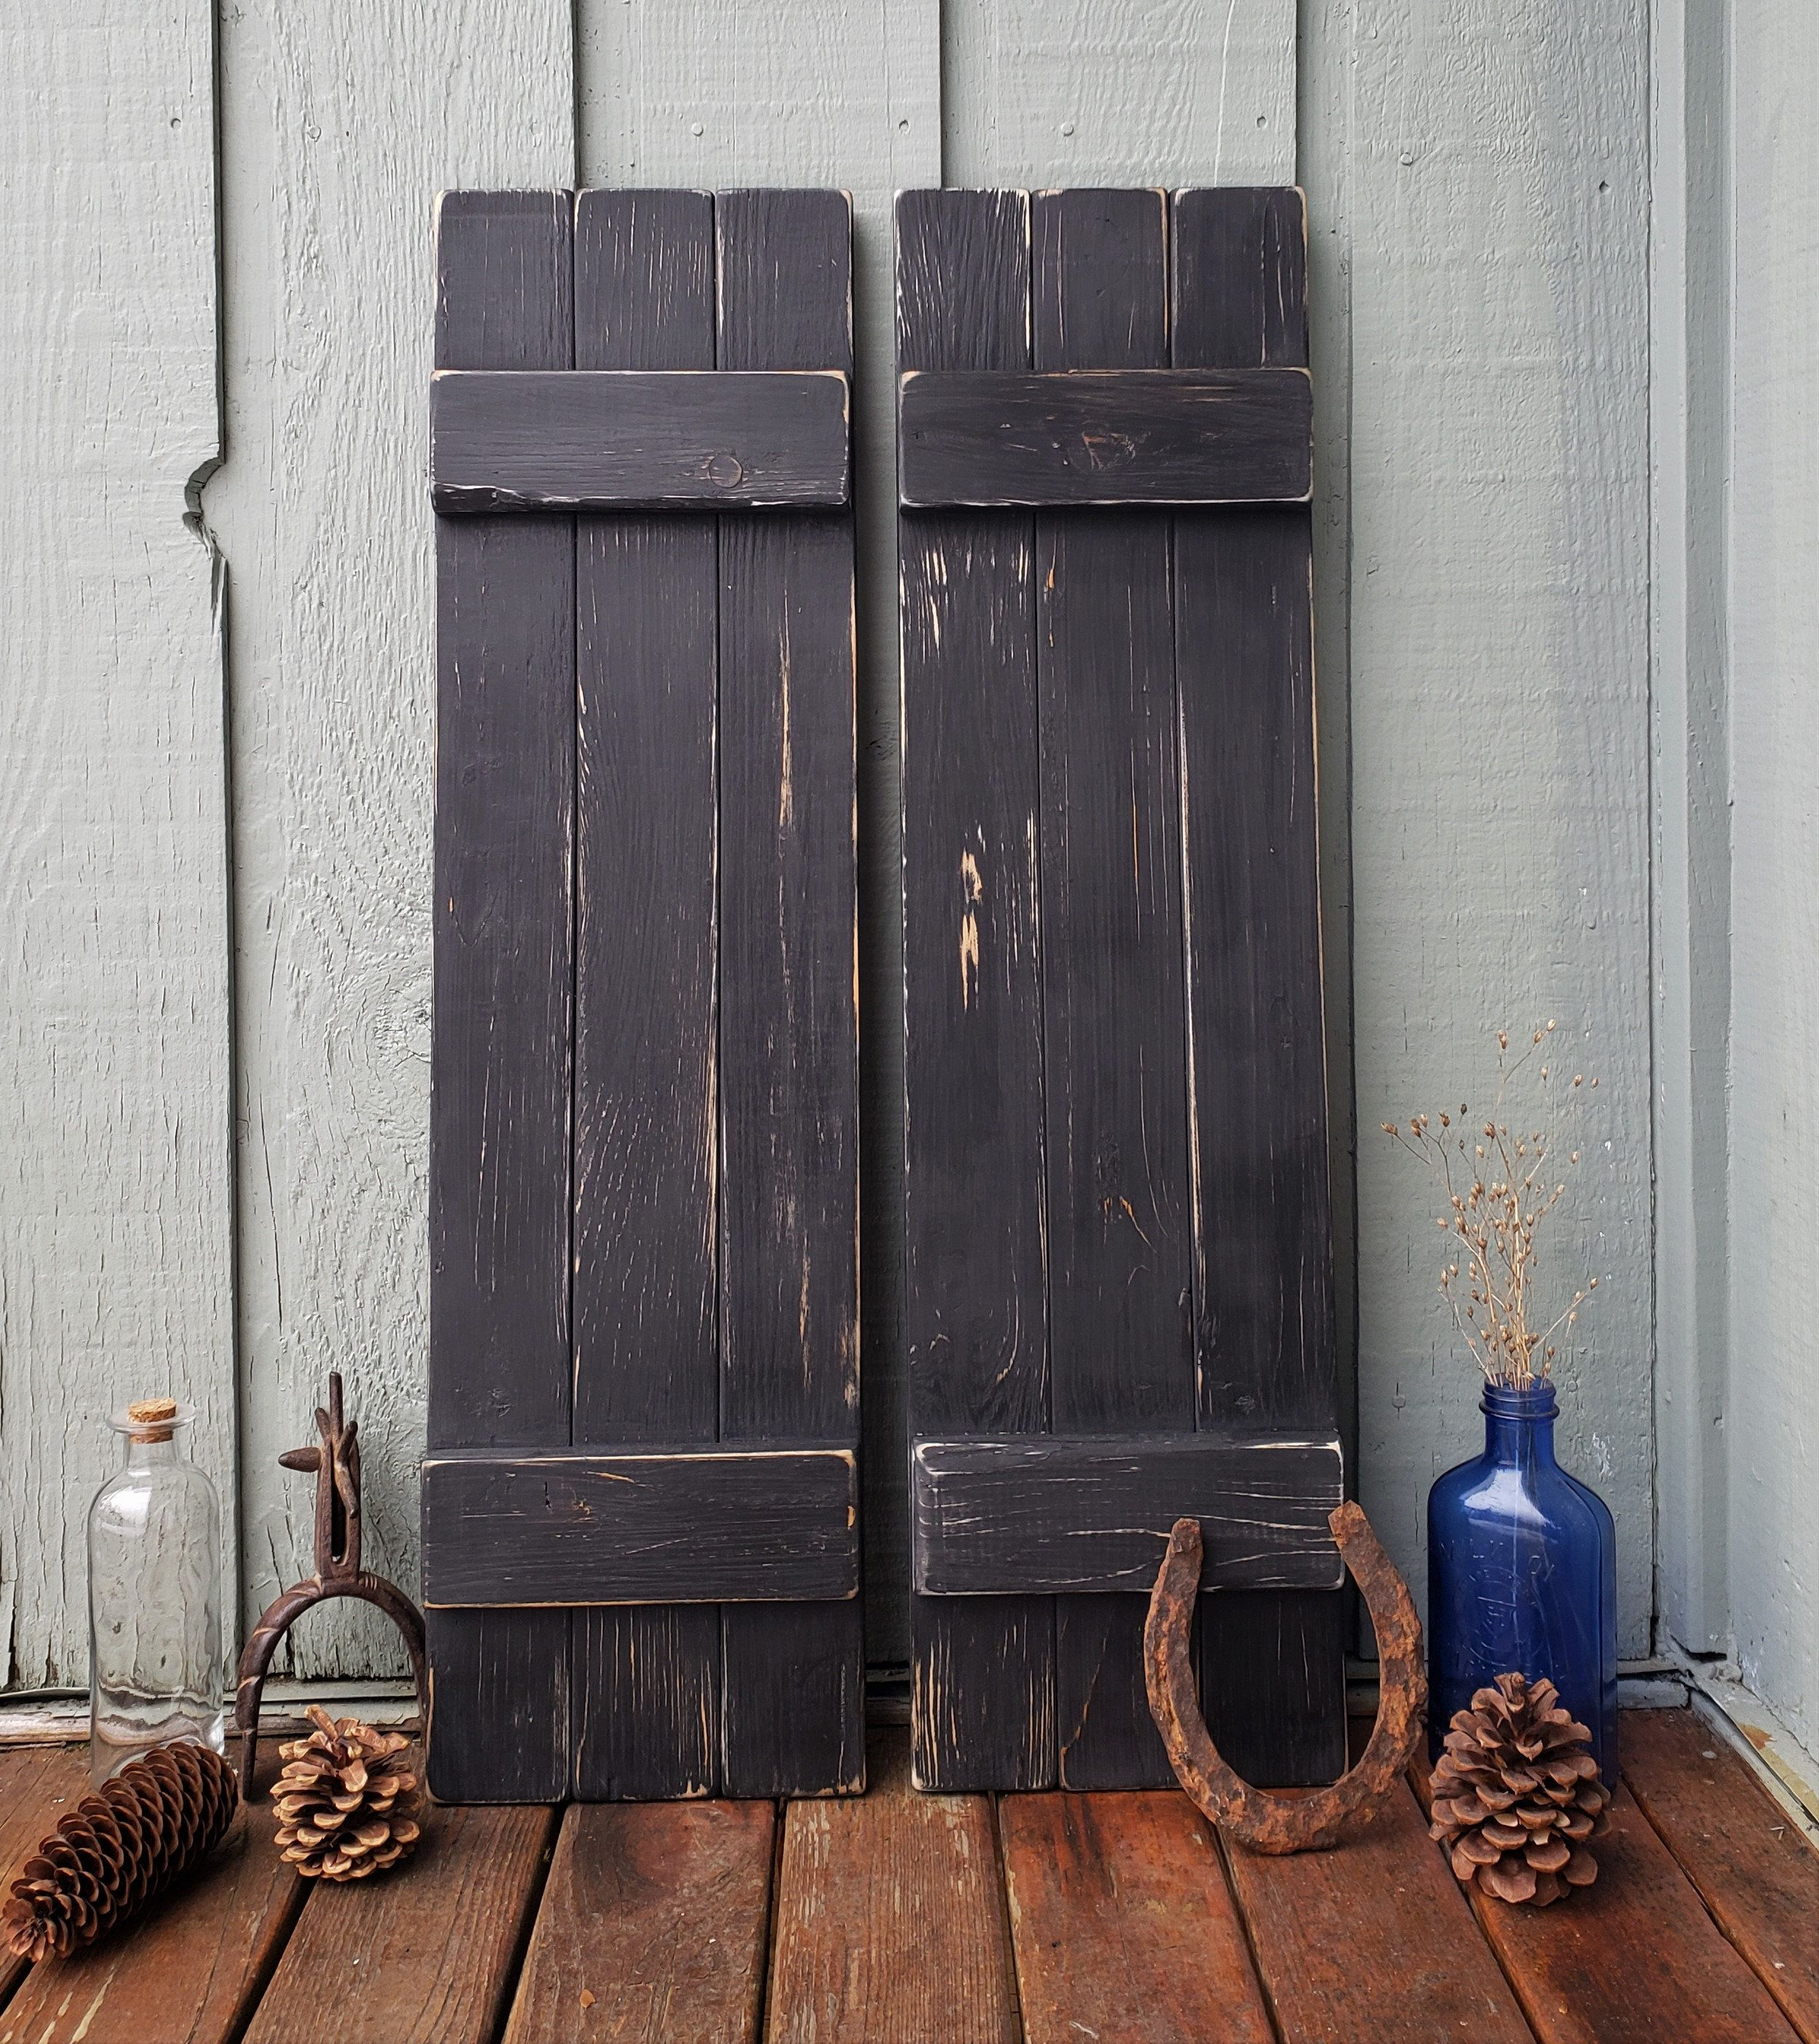 Distressed Black Painted Wood Shutters Rustic Wood Shutters Interior Wall Decor Farmhouse Decor Reclaimed Wood Board And Batten Wood Shutters Painting Shutters Homestead Decor